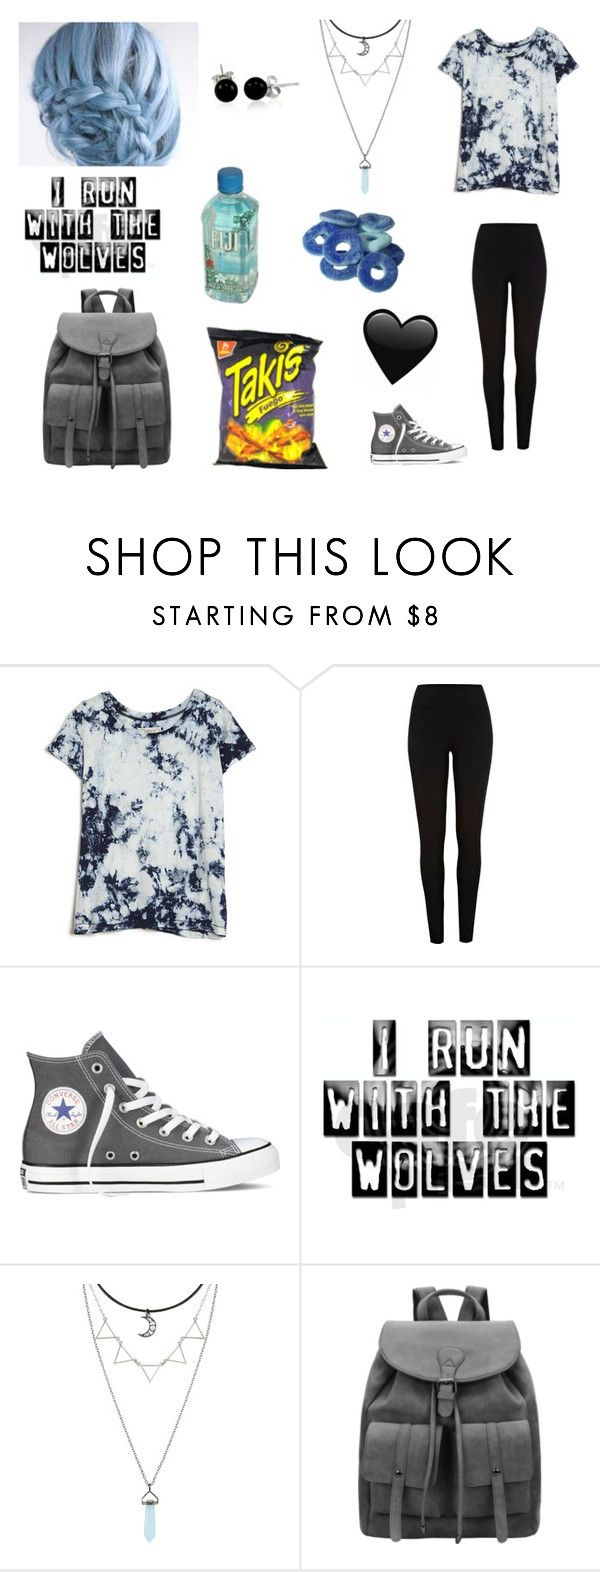 """""""Untitled #154"""" by nightstalker ❤ liked on Polyvore featuring Current/Elliott, River Island, Converse, Bling Jewelry and Fuego"""